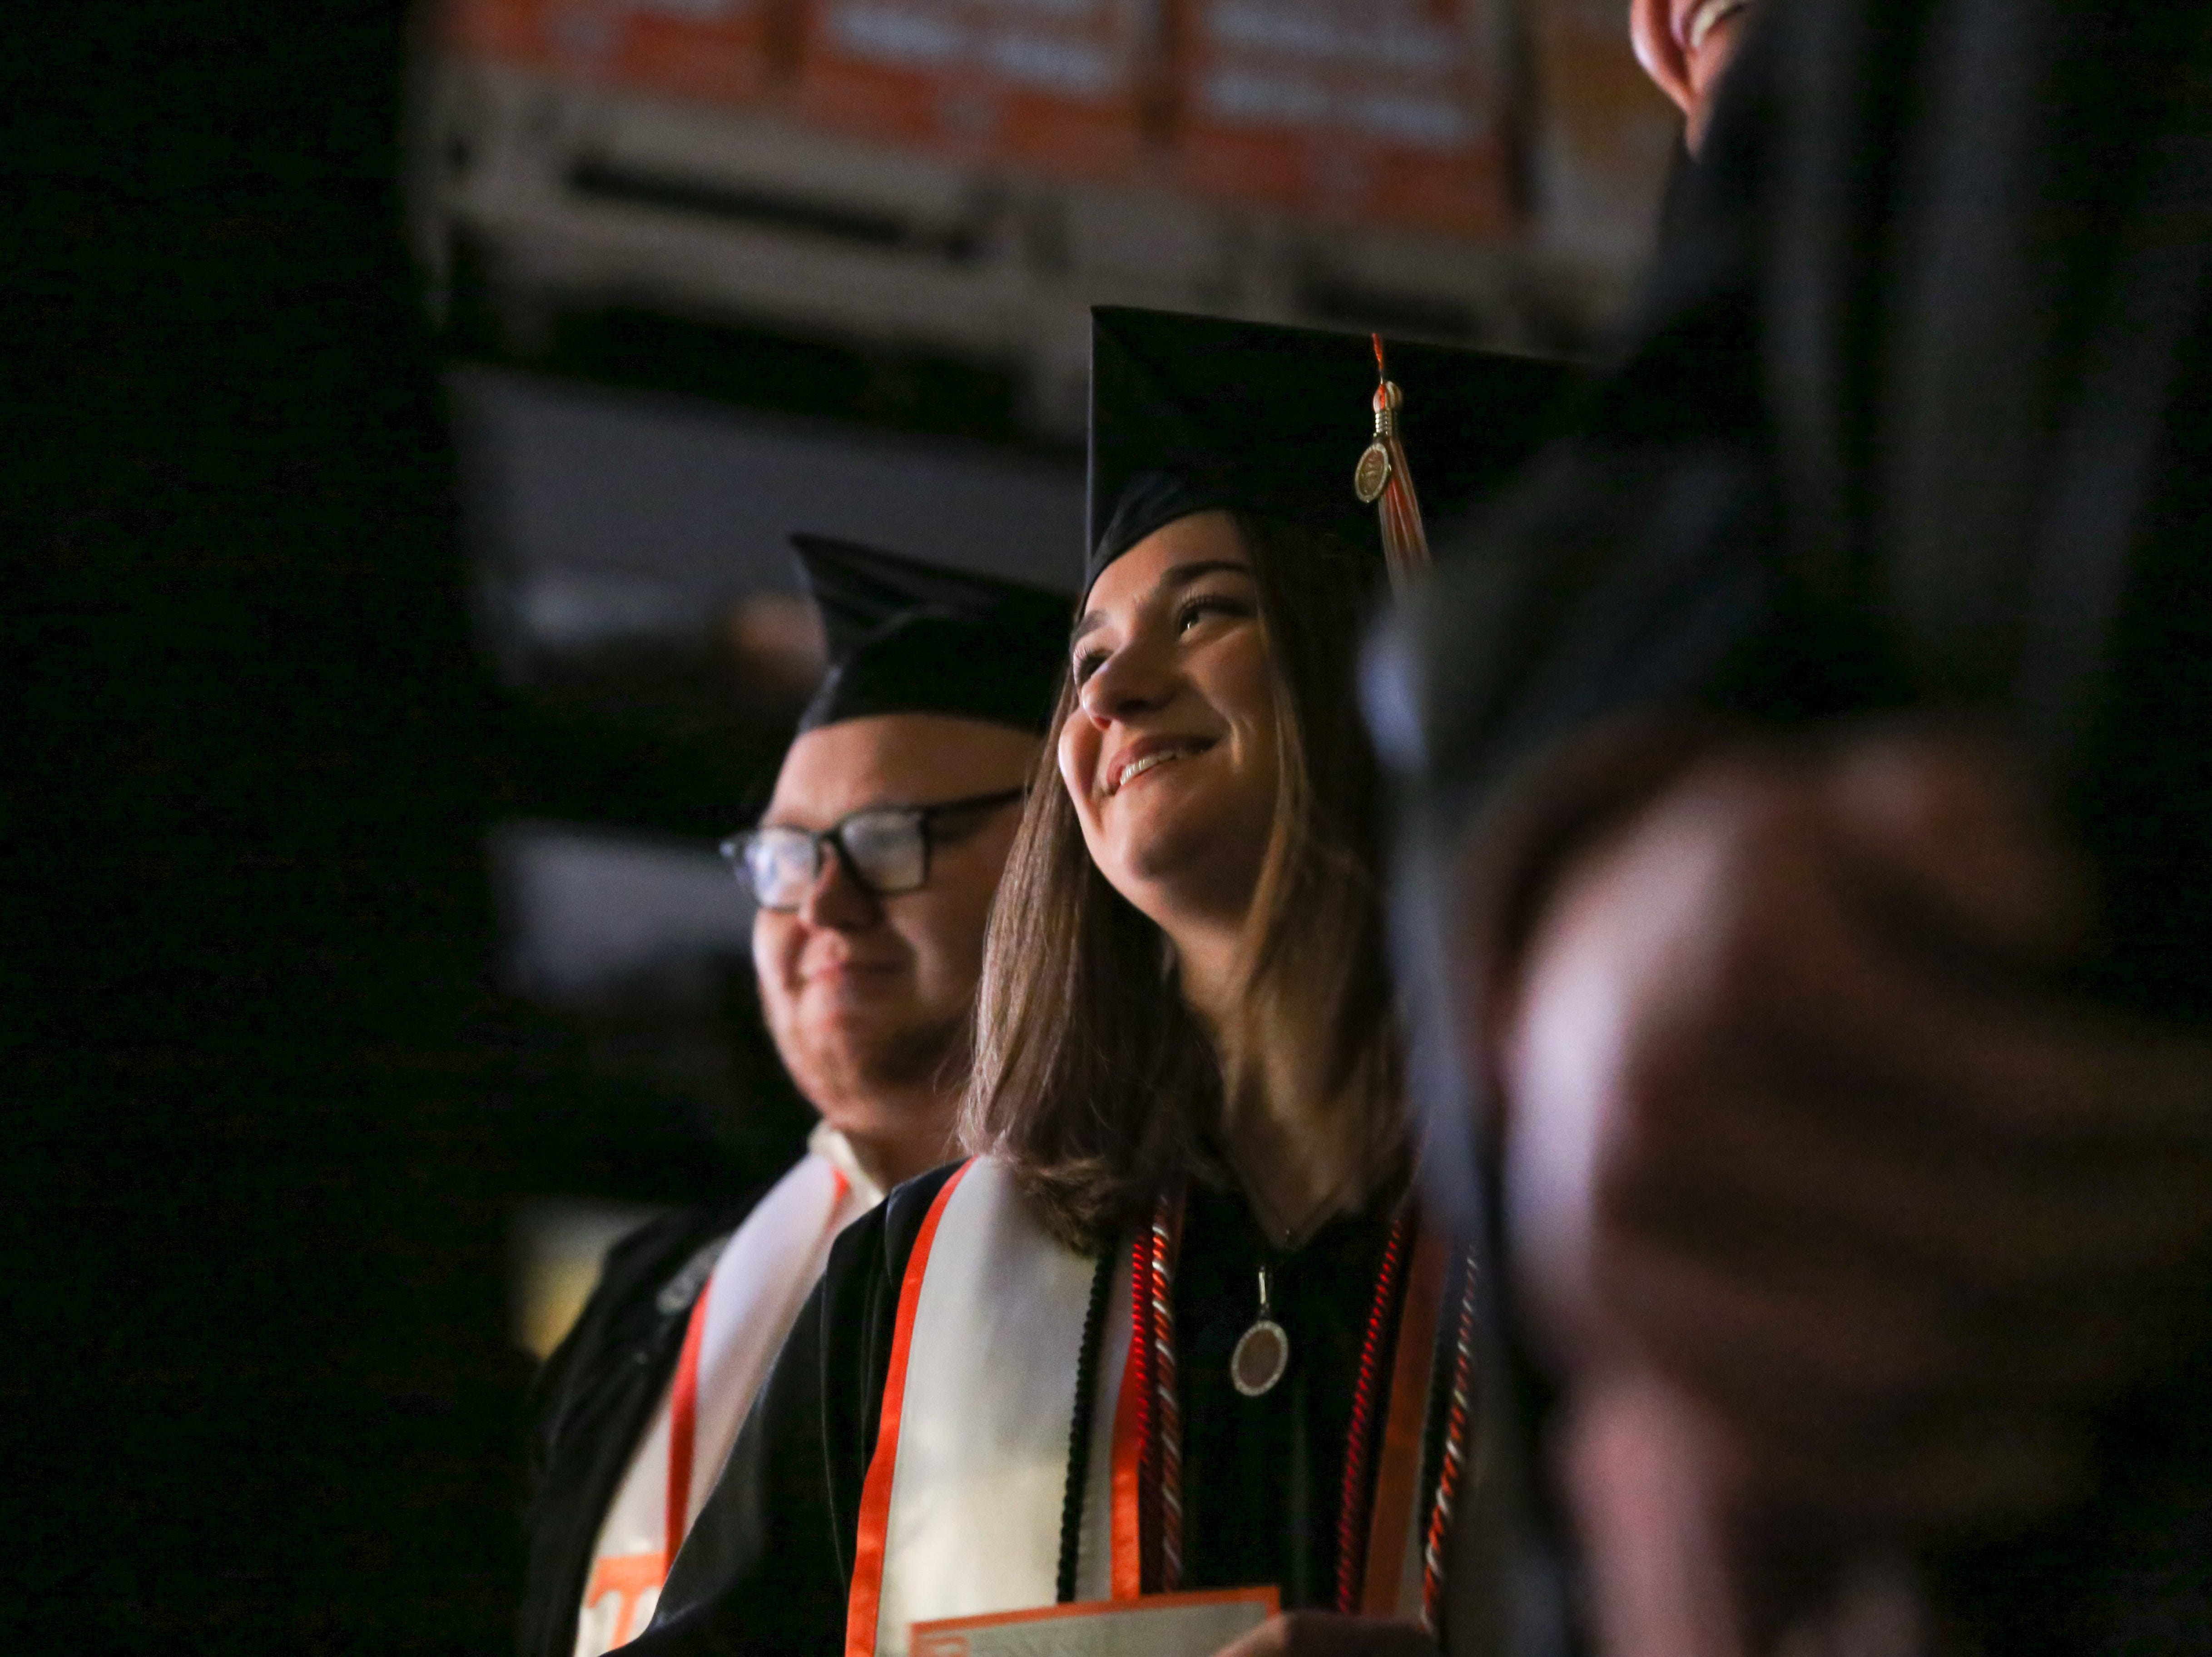 Graduates smile before they are called to the stage during the University of Tennessee winter Commencement ceremony at Thompson-Boling Assembly Center and Arena in Knoxville Friday, Dec. 14, 2018.